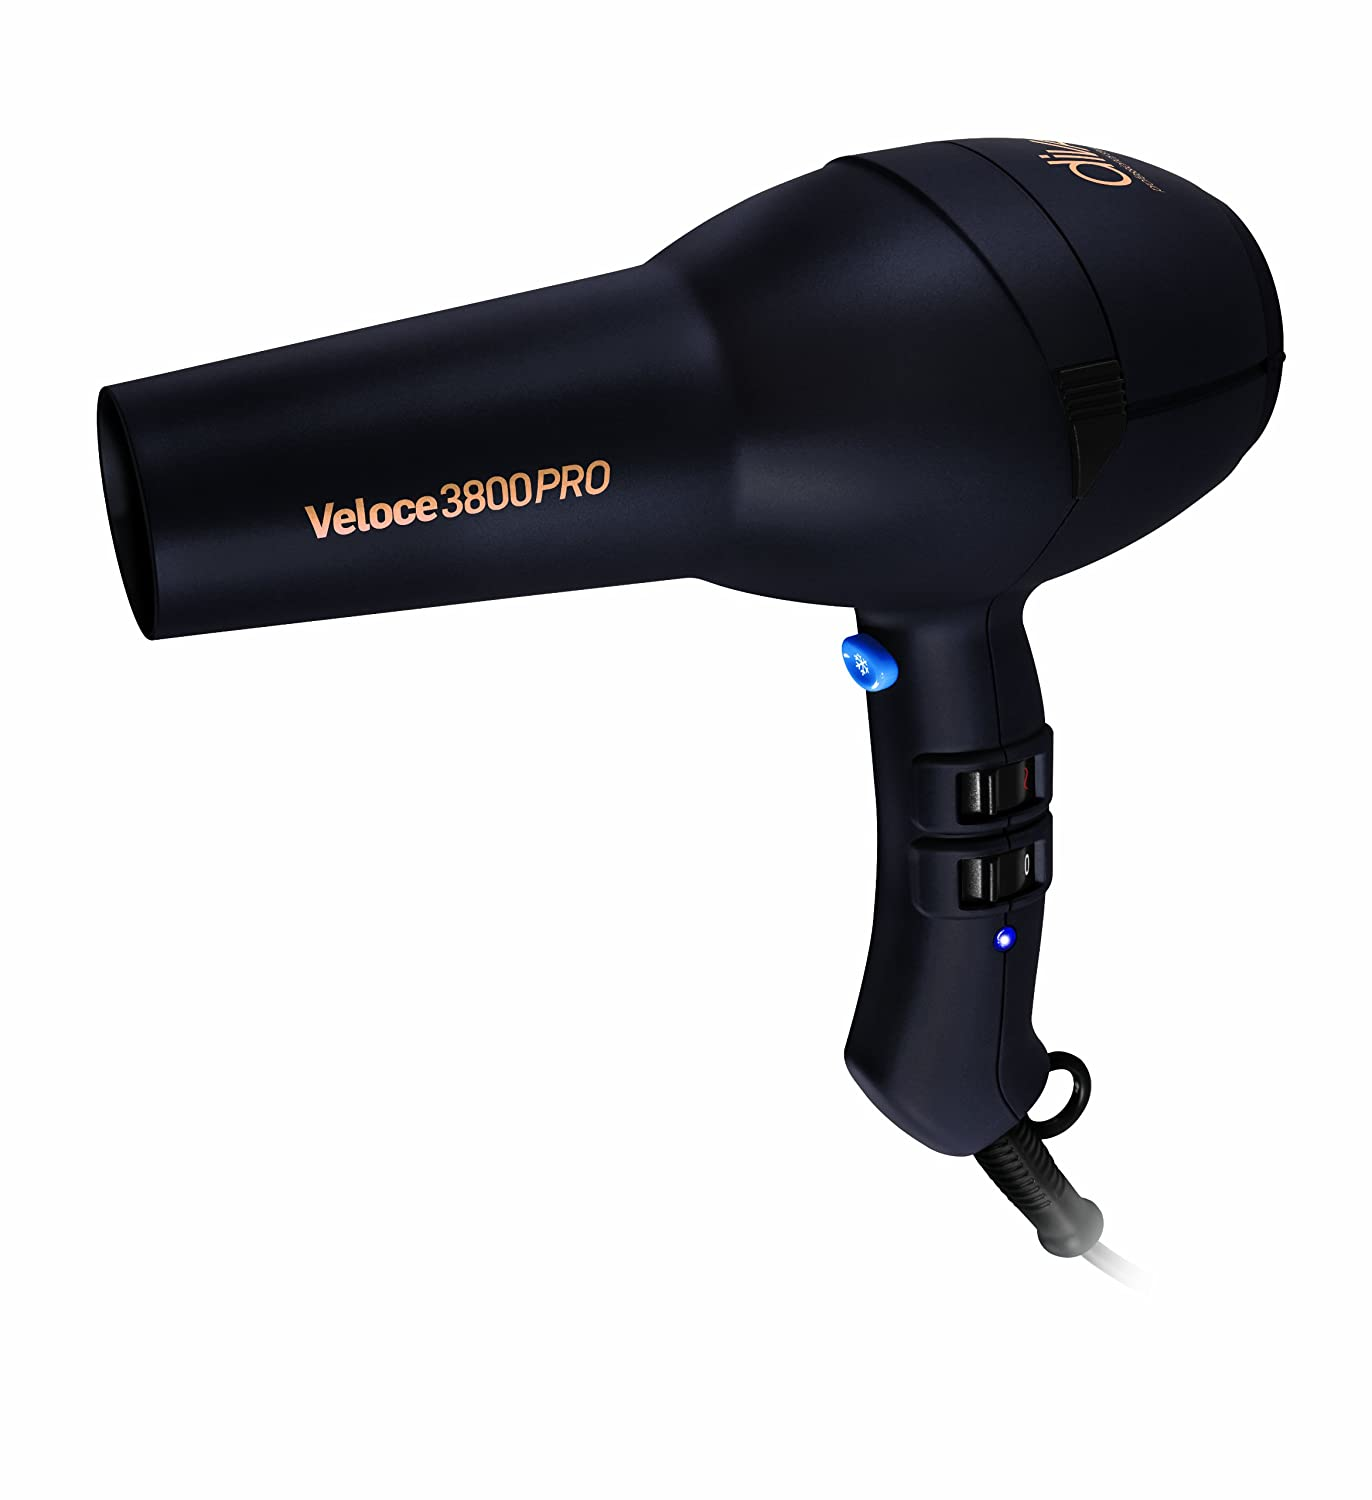 Diva Professional Styling Veloce 3800 Pro Rubberised Black SalonUK SUK134